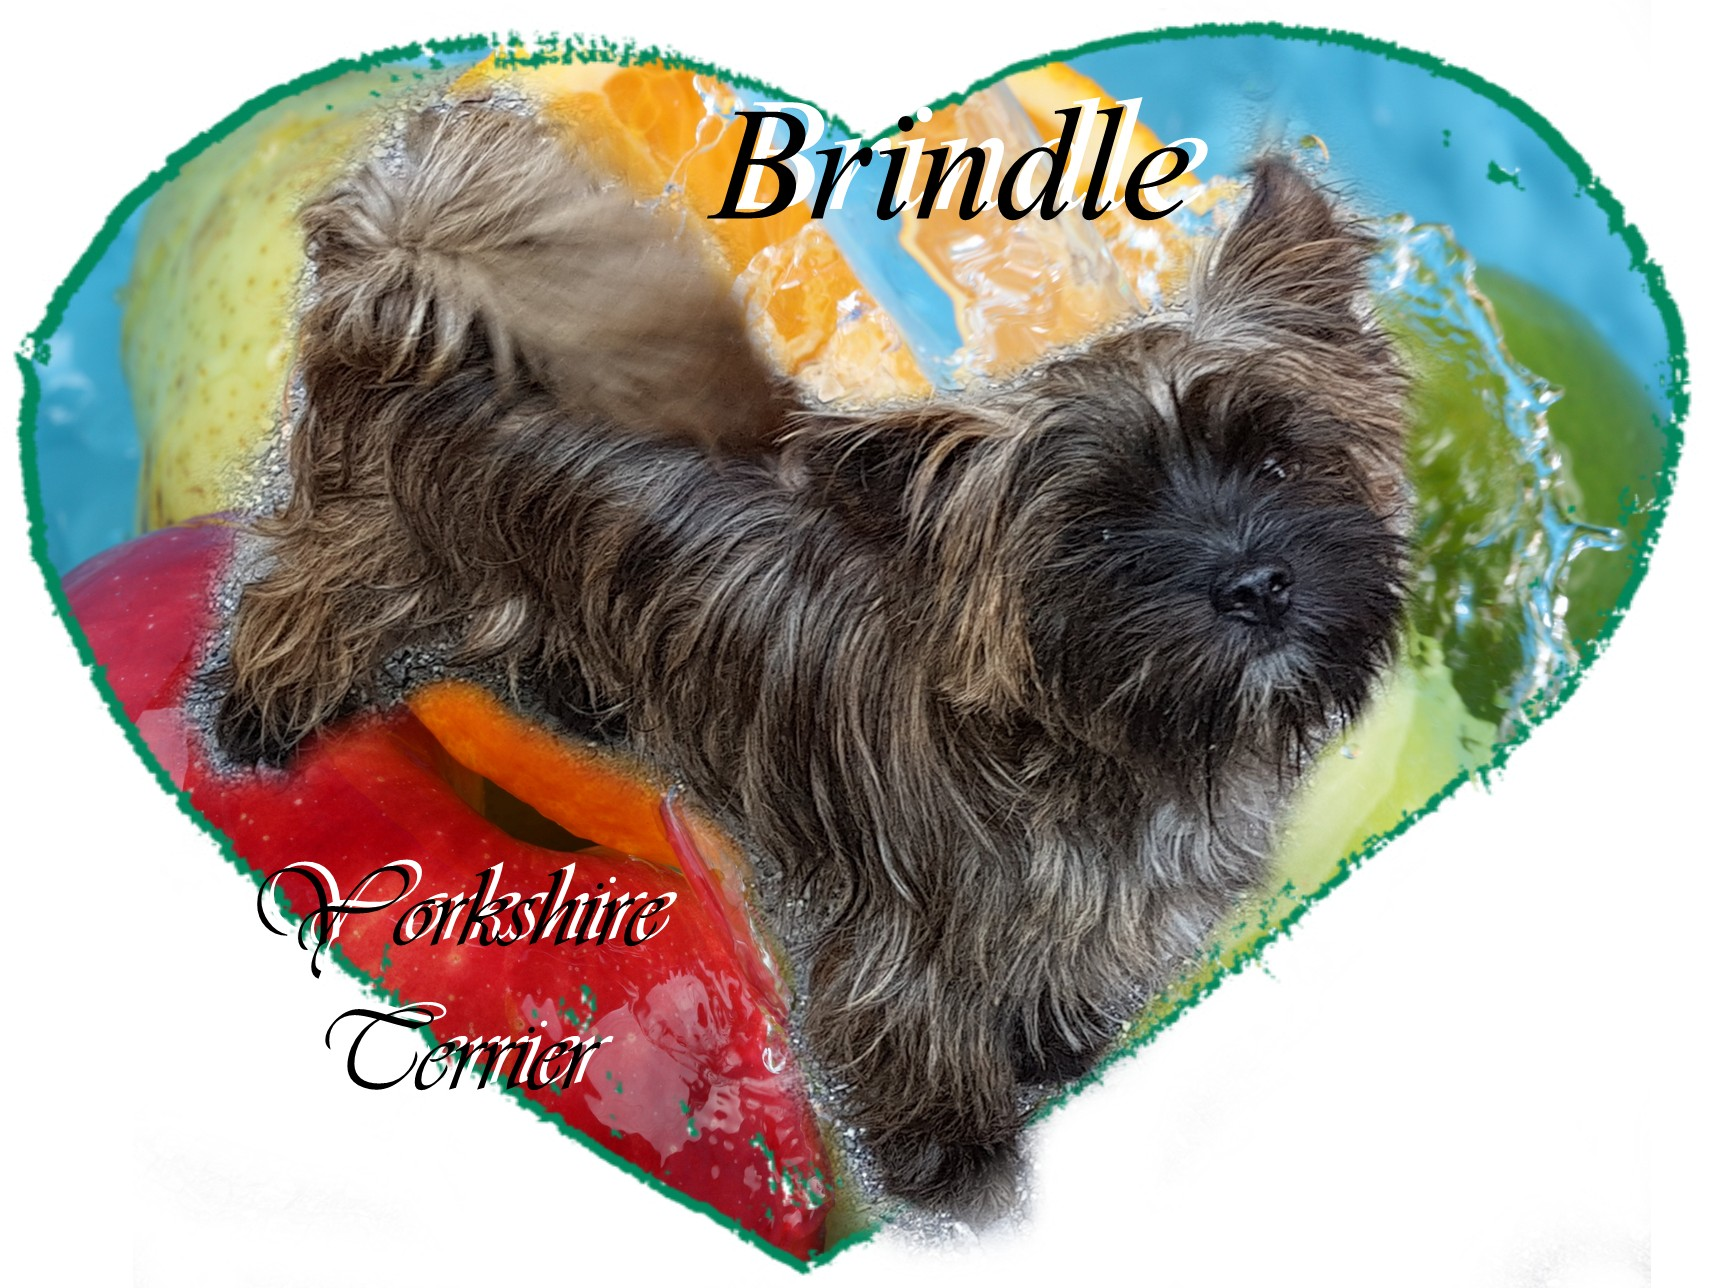 Brindle Yorkshire Terrier